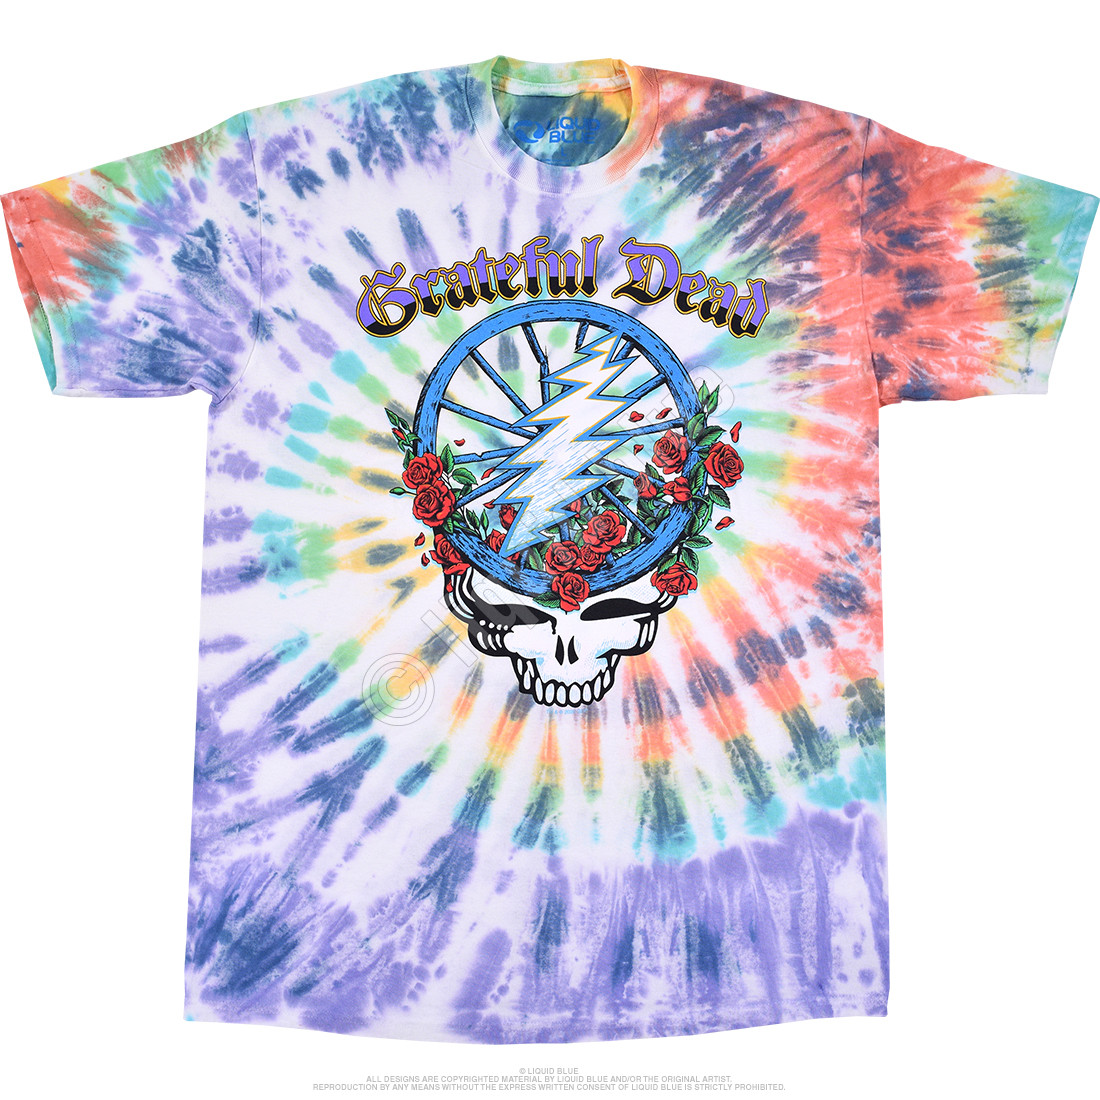 Steal Your Wheel Tie-Dye T-Shirt